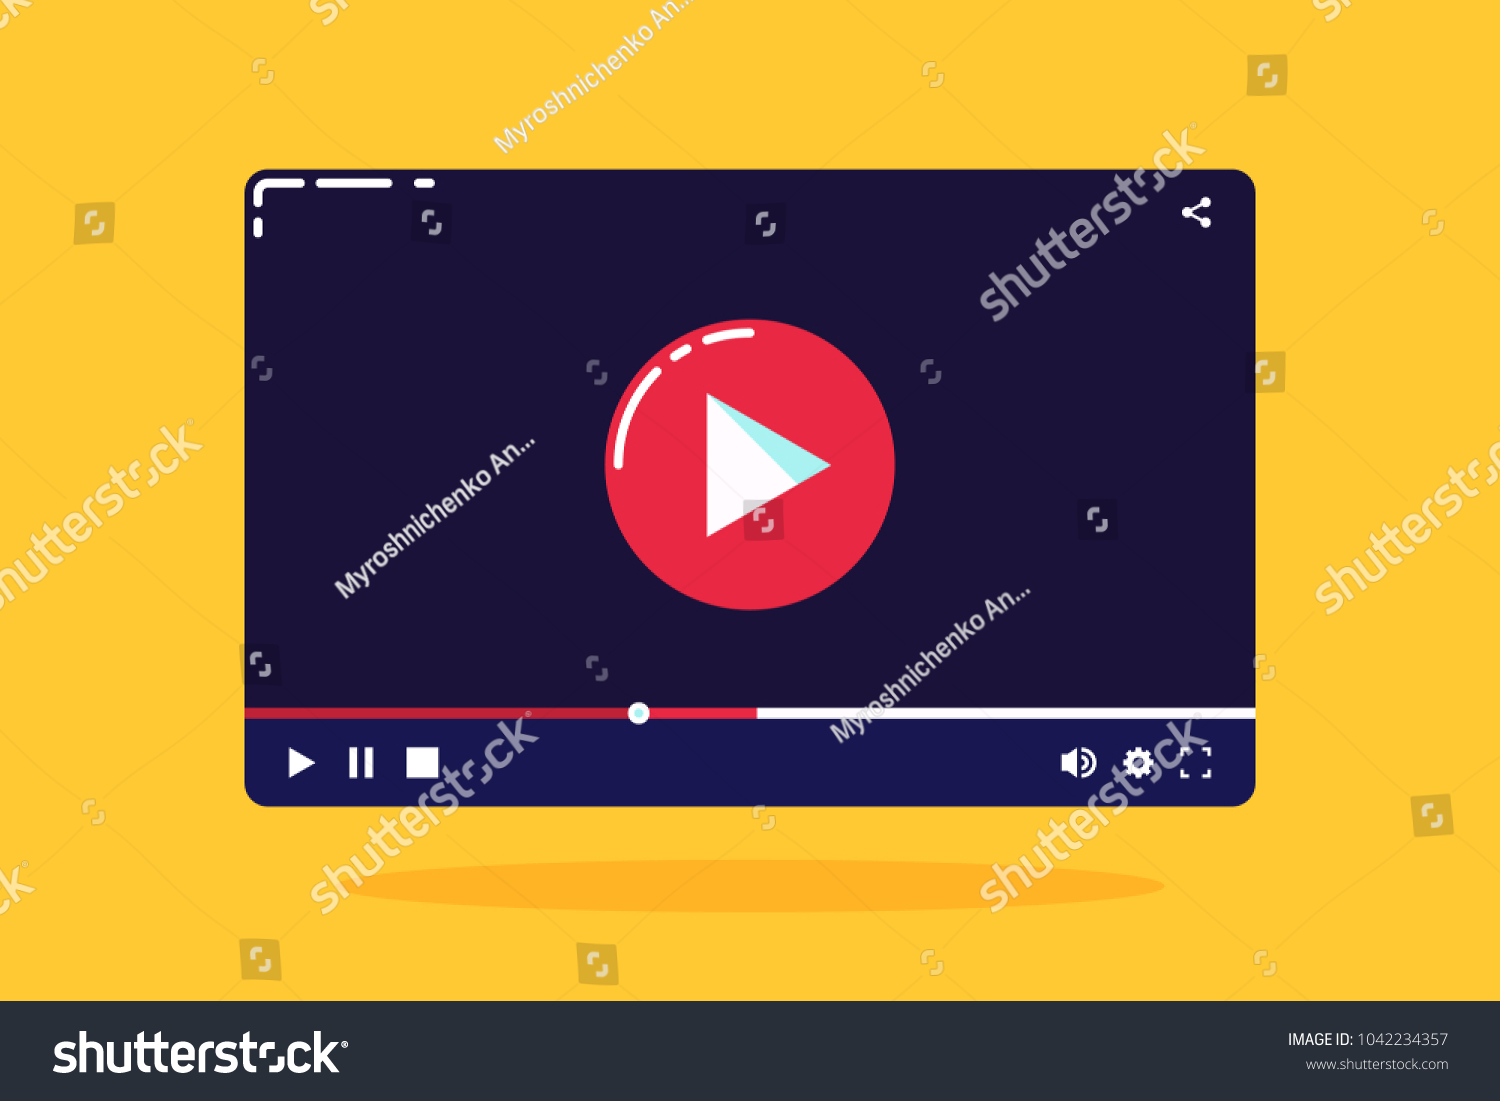 Cartoon Video Player TemplateModern Or Audio Interface In Flat StyleVector